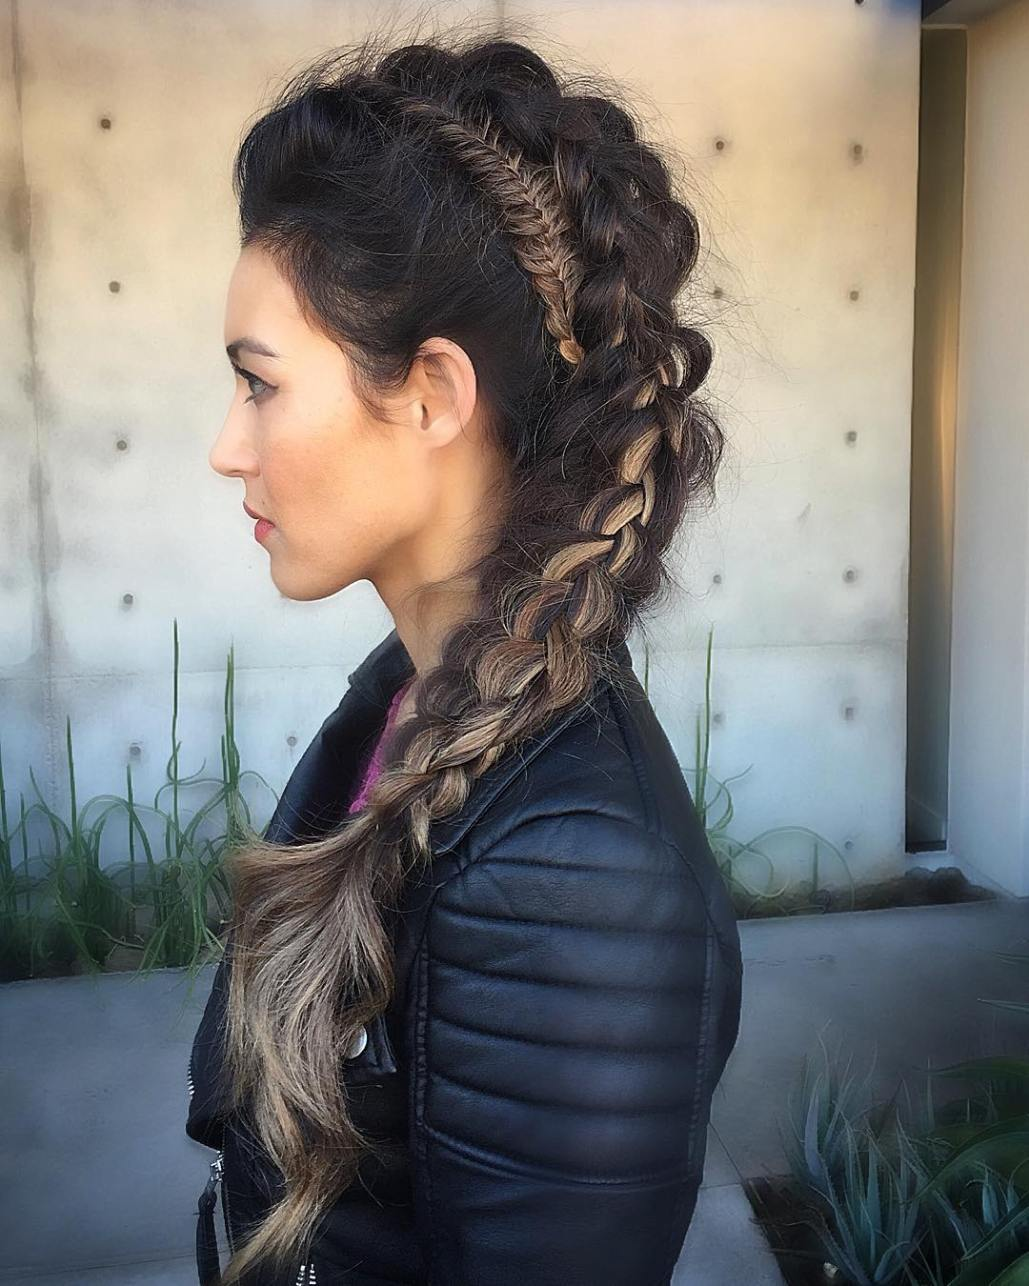 11 Perfectly Imperfect Messy Hairstyles for All Lengths